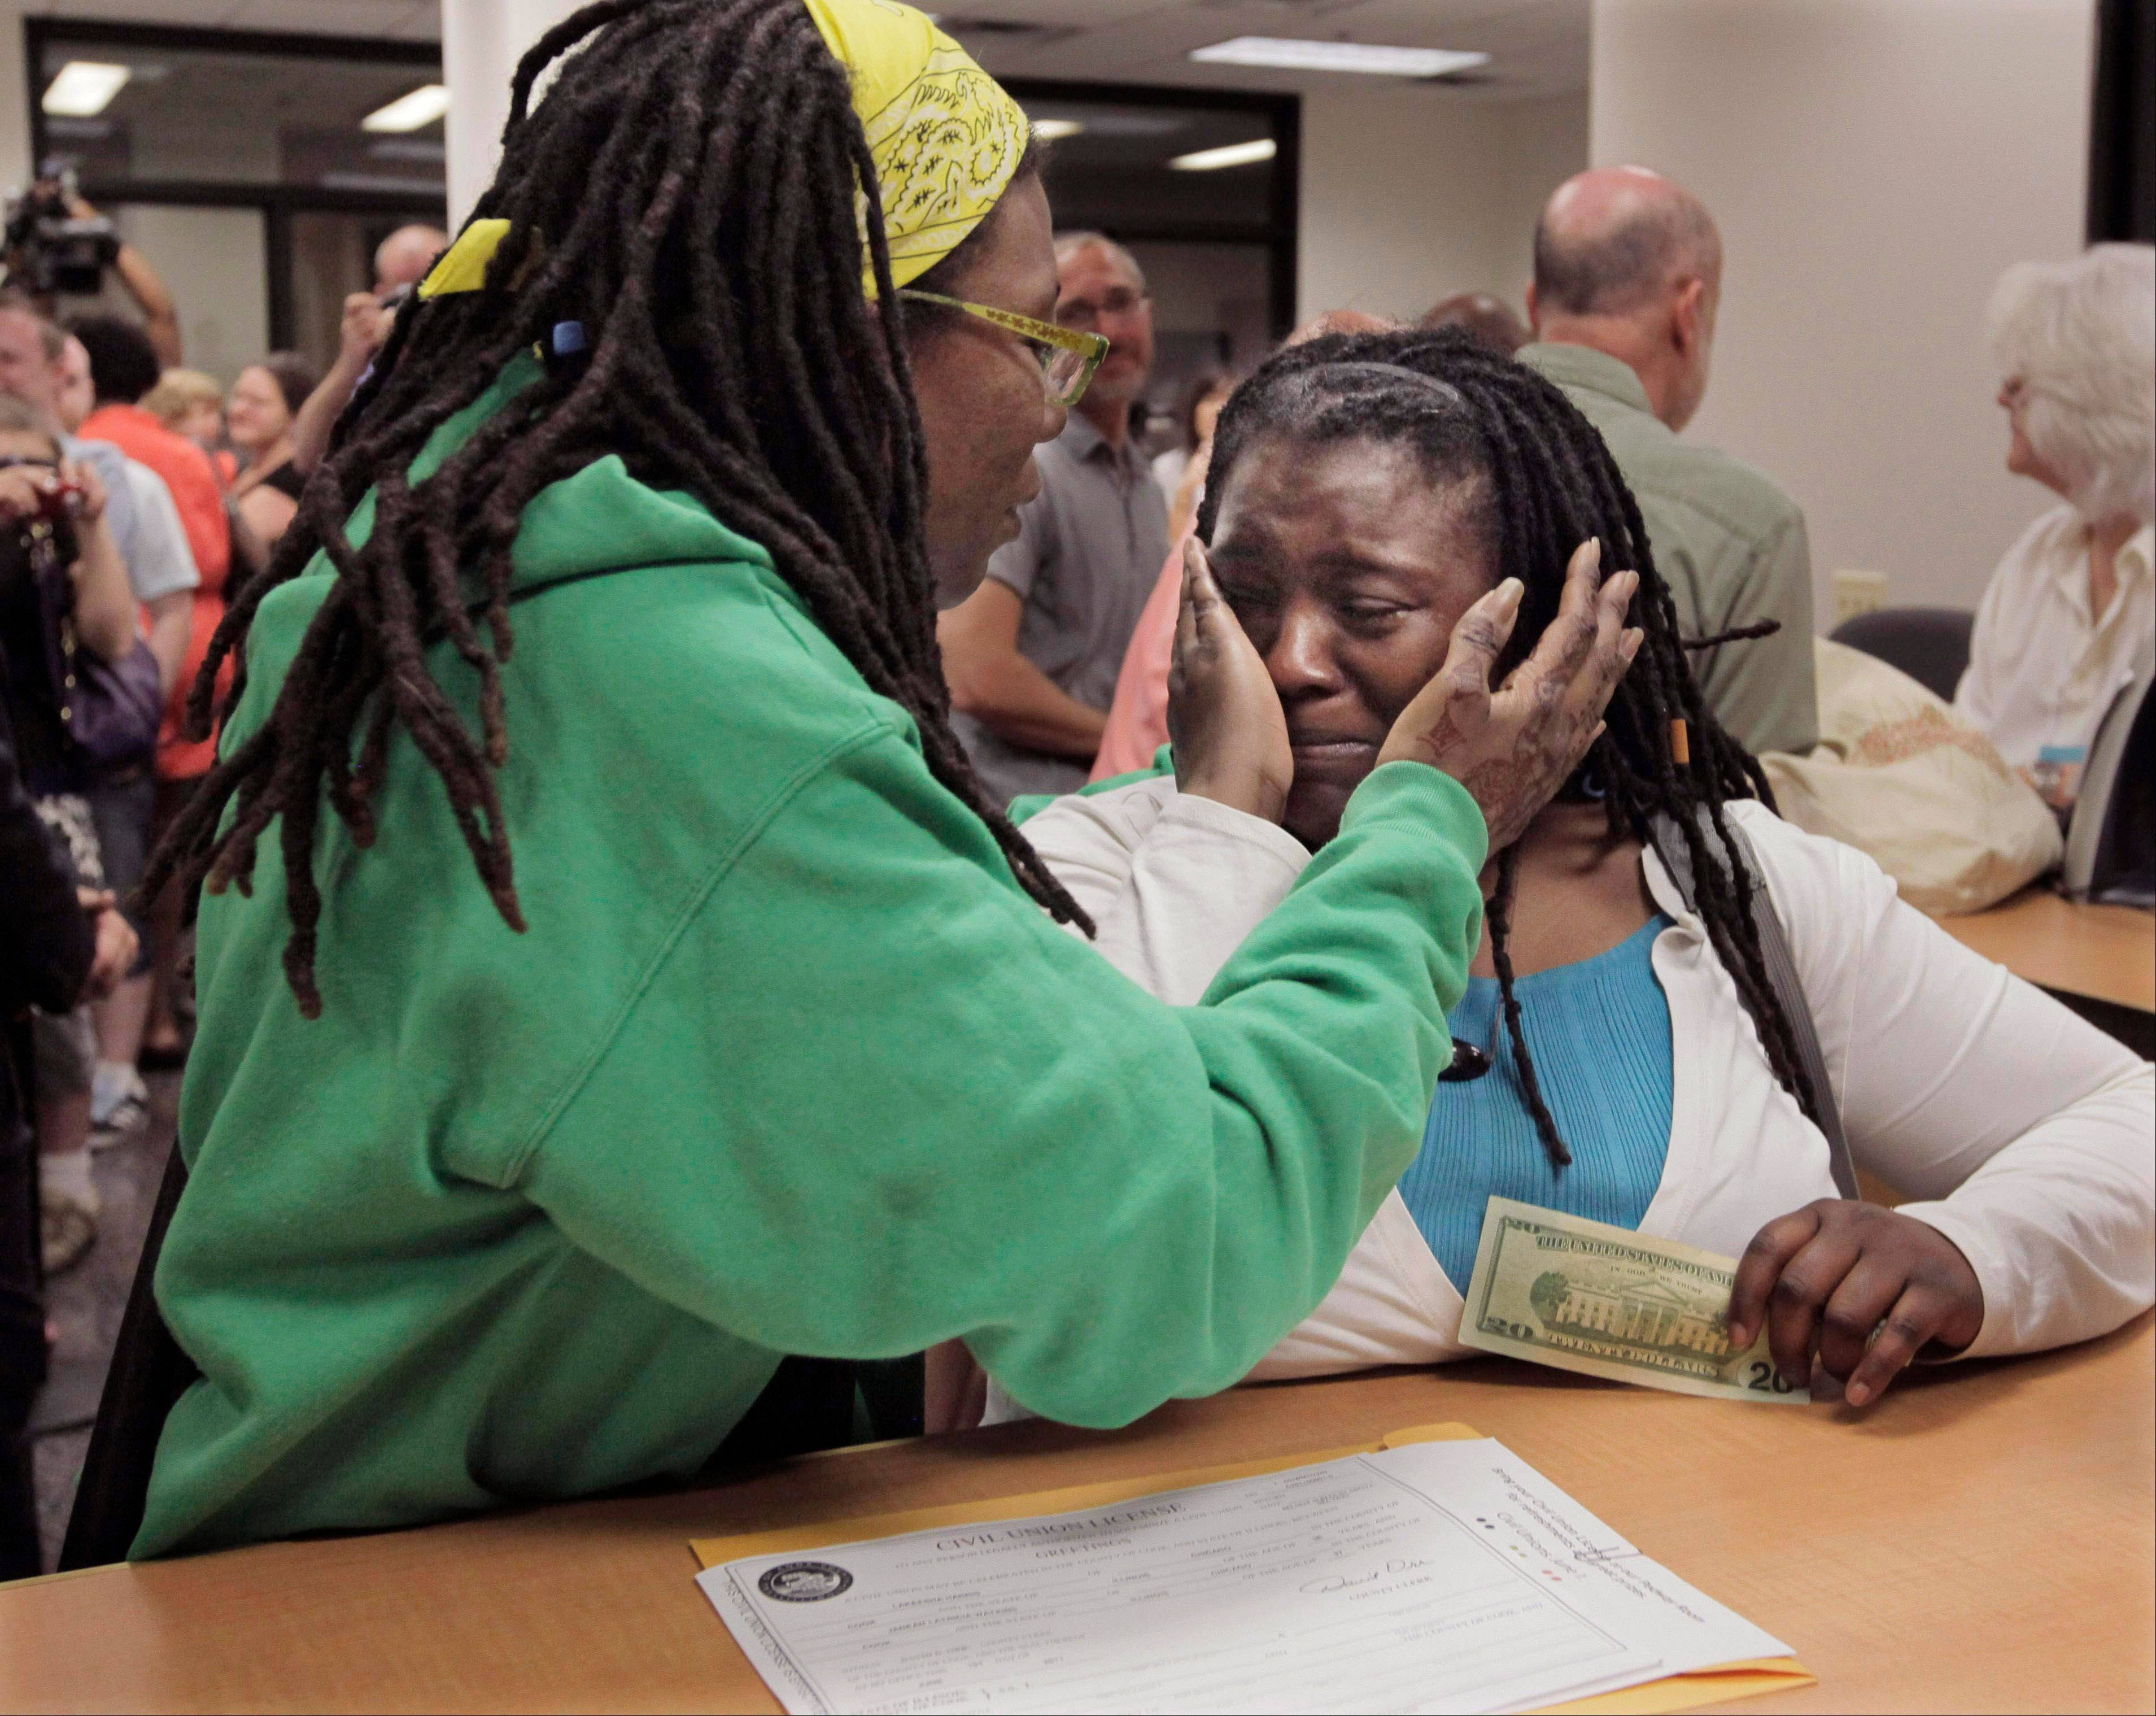 ASSOCIATED PRESSIn this June 1, 2011, file photo, Janean Watkins, left, and Lakeesha Harris embrace after being the first in line to obtain a civil union license from the Cook County Office of Vital Records in Chicago. They are among more than two dozen same-sex couples who filed lawsuits Wednesday, challenging the constitutionality of Illinois� marriage laws.